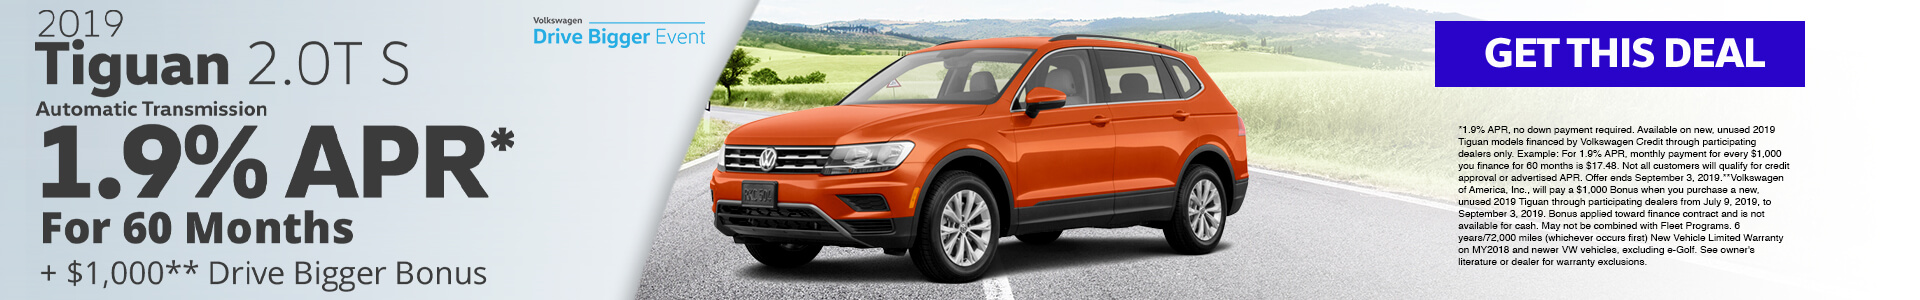 2019 Tiguan 1.9% APR for 60 months